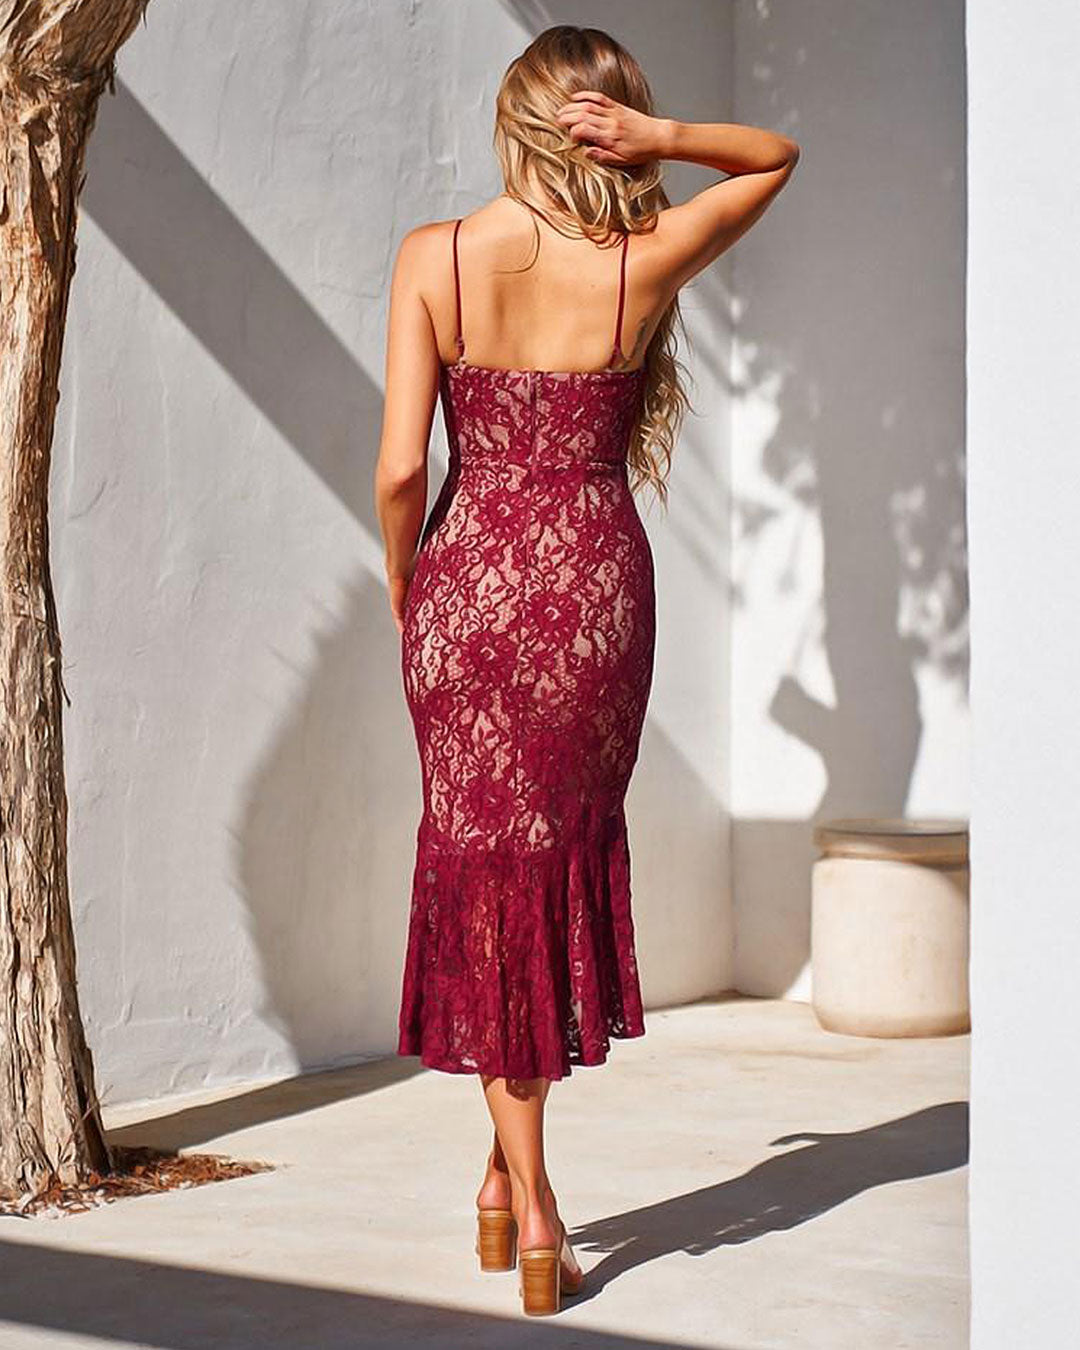 Amylia Lace Midi Dress - Red [PRE-ORDER] - Miss Runway Boutique